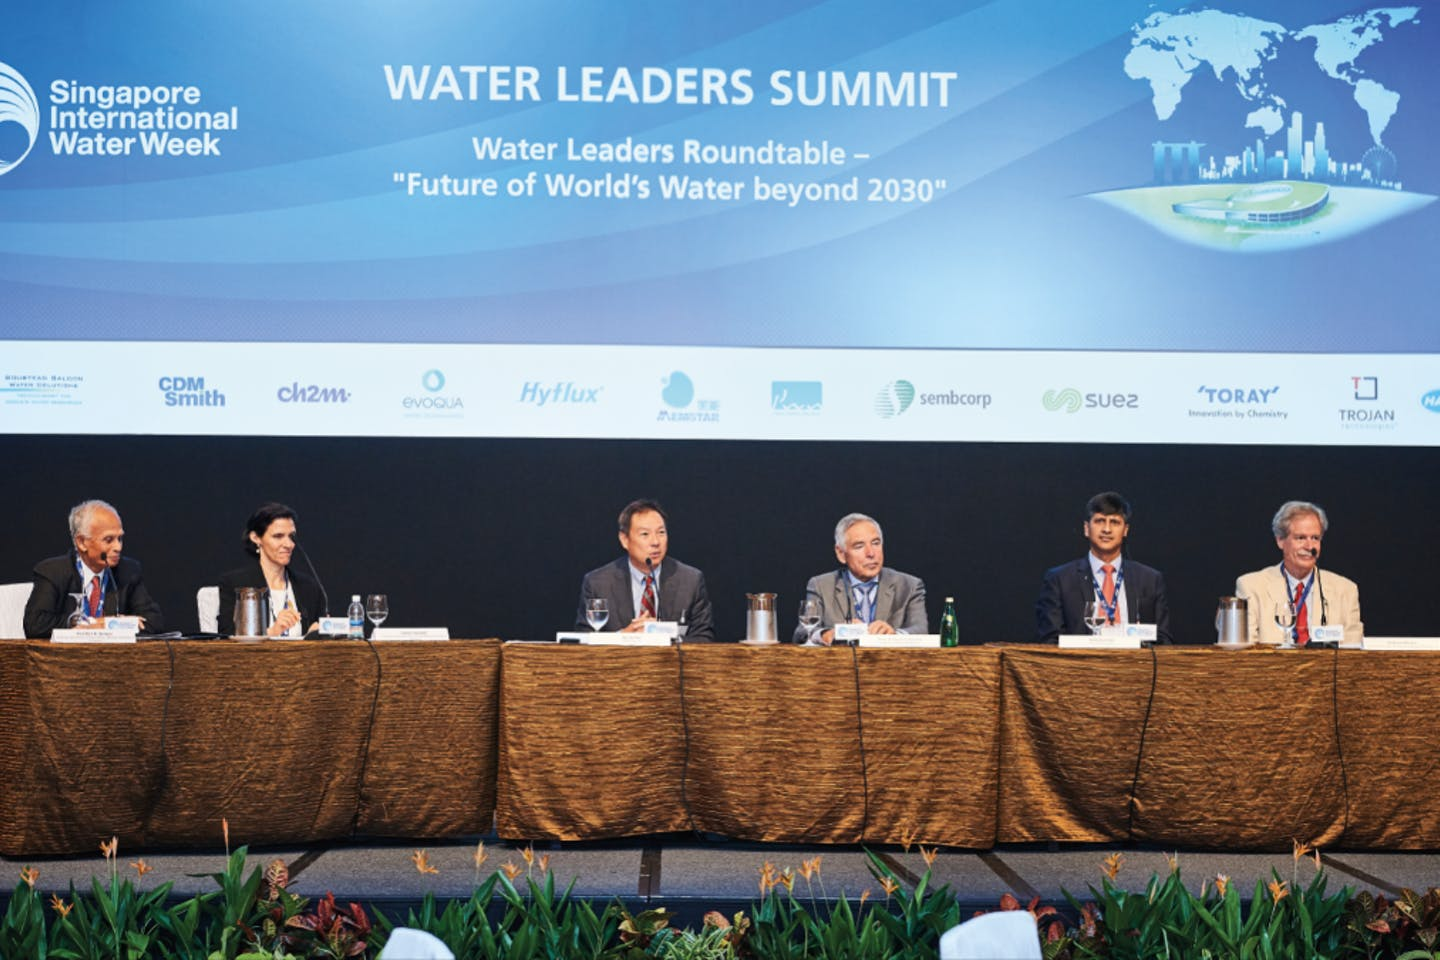 Delegates discuss the future of the water industry at Singapore International Water Week. Image: SIWW